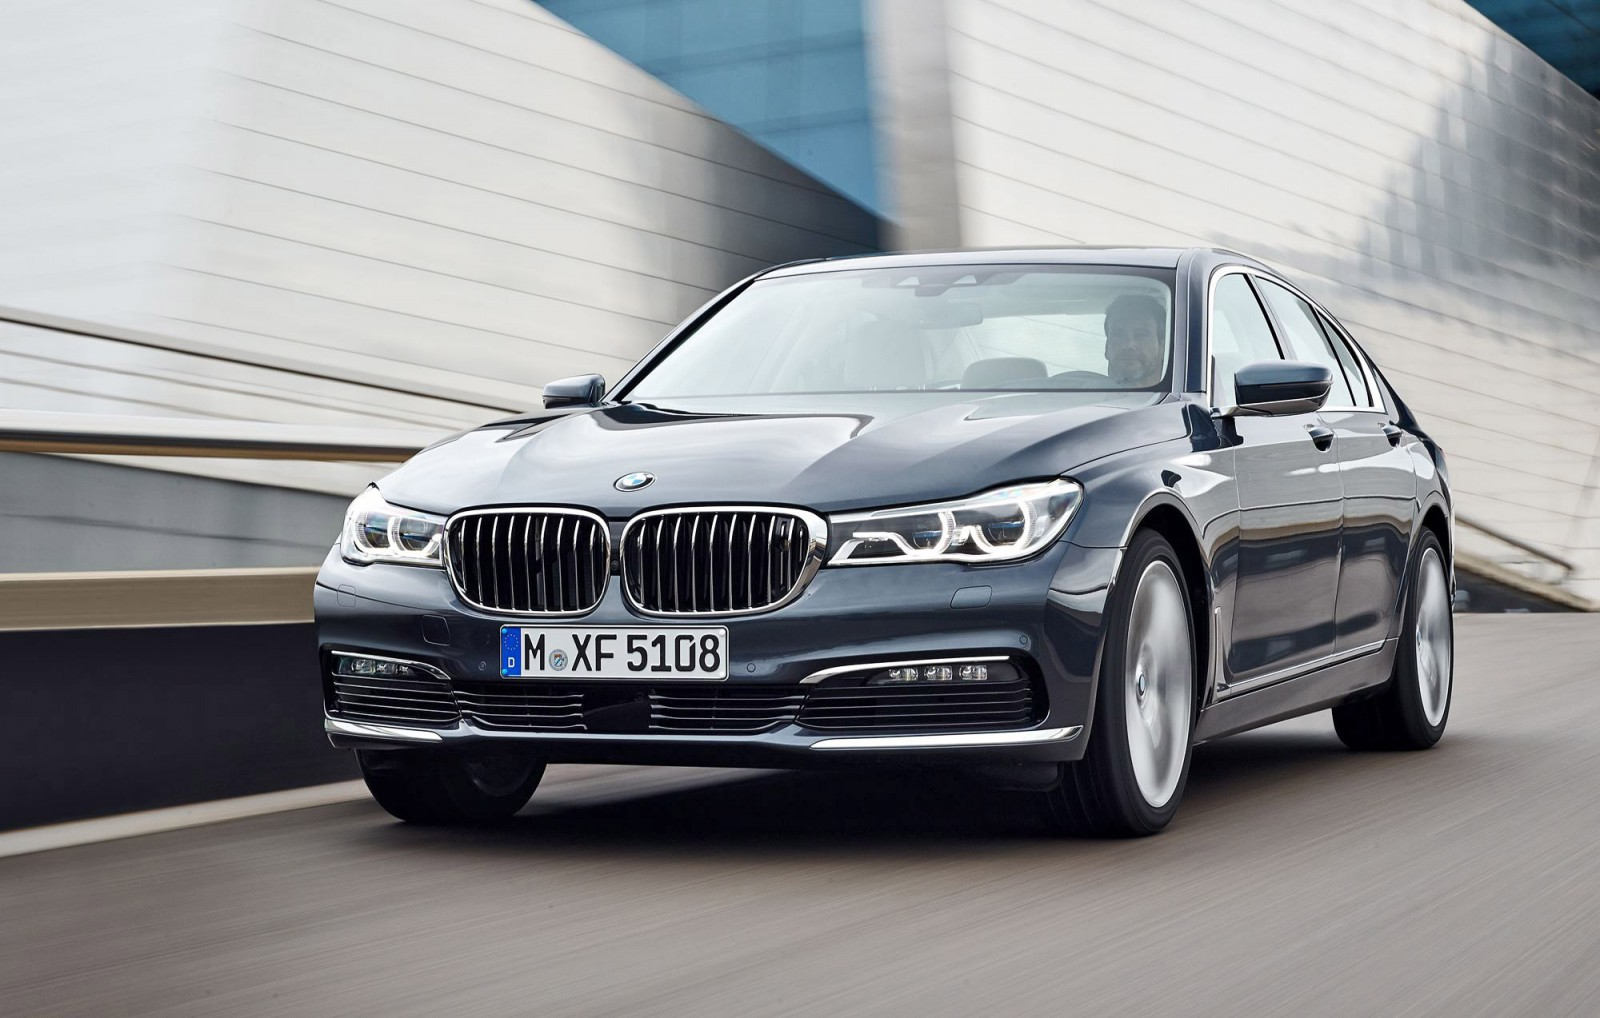 2016 BMW 750 Exterior Photos 2